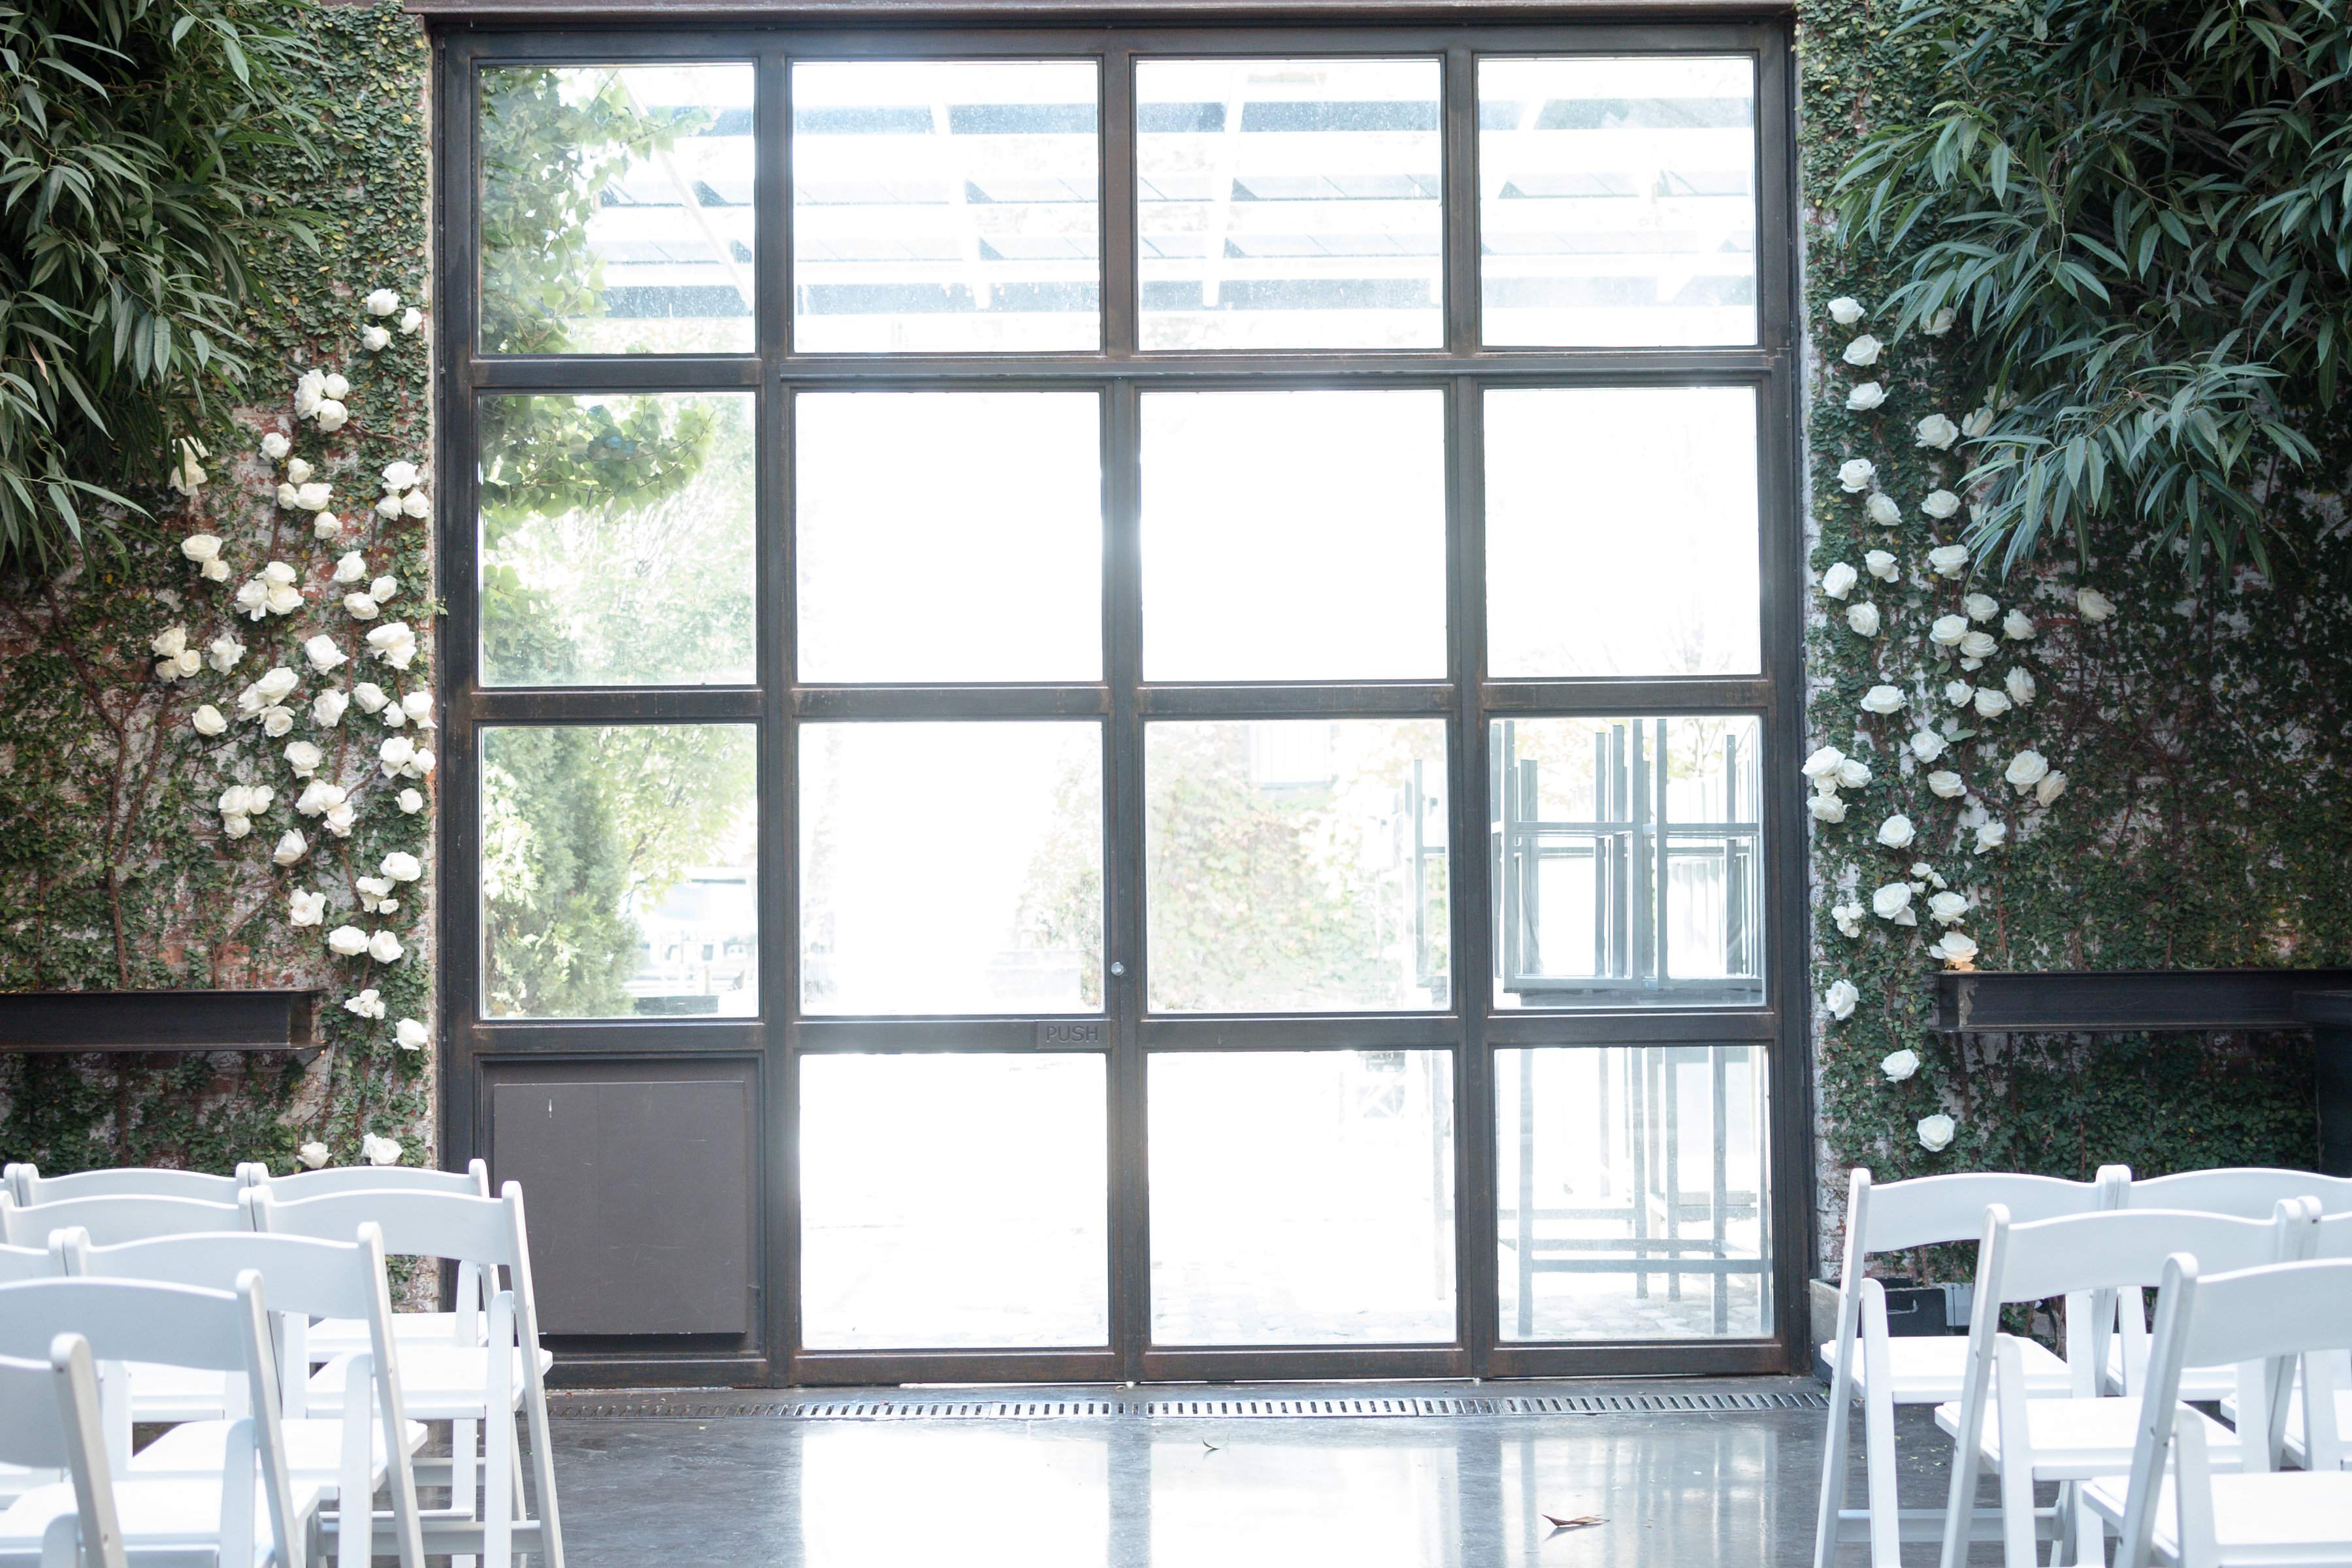 wedding ceremony site with green and white flowers